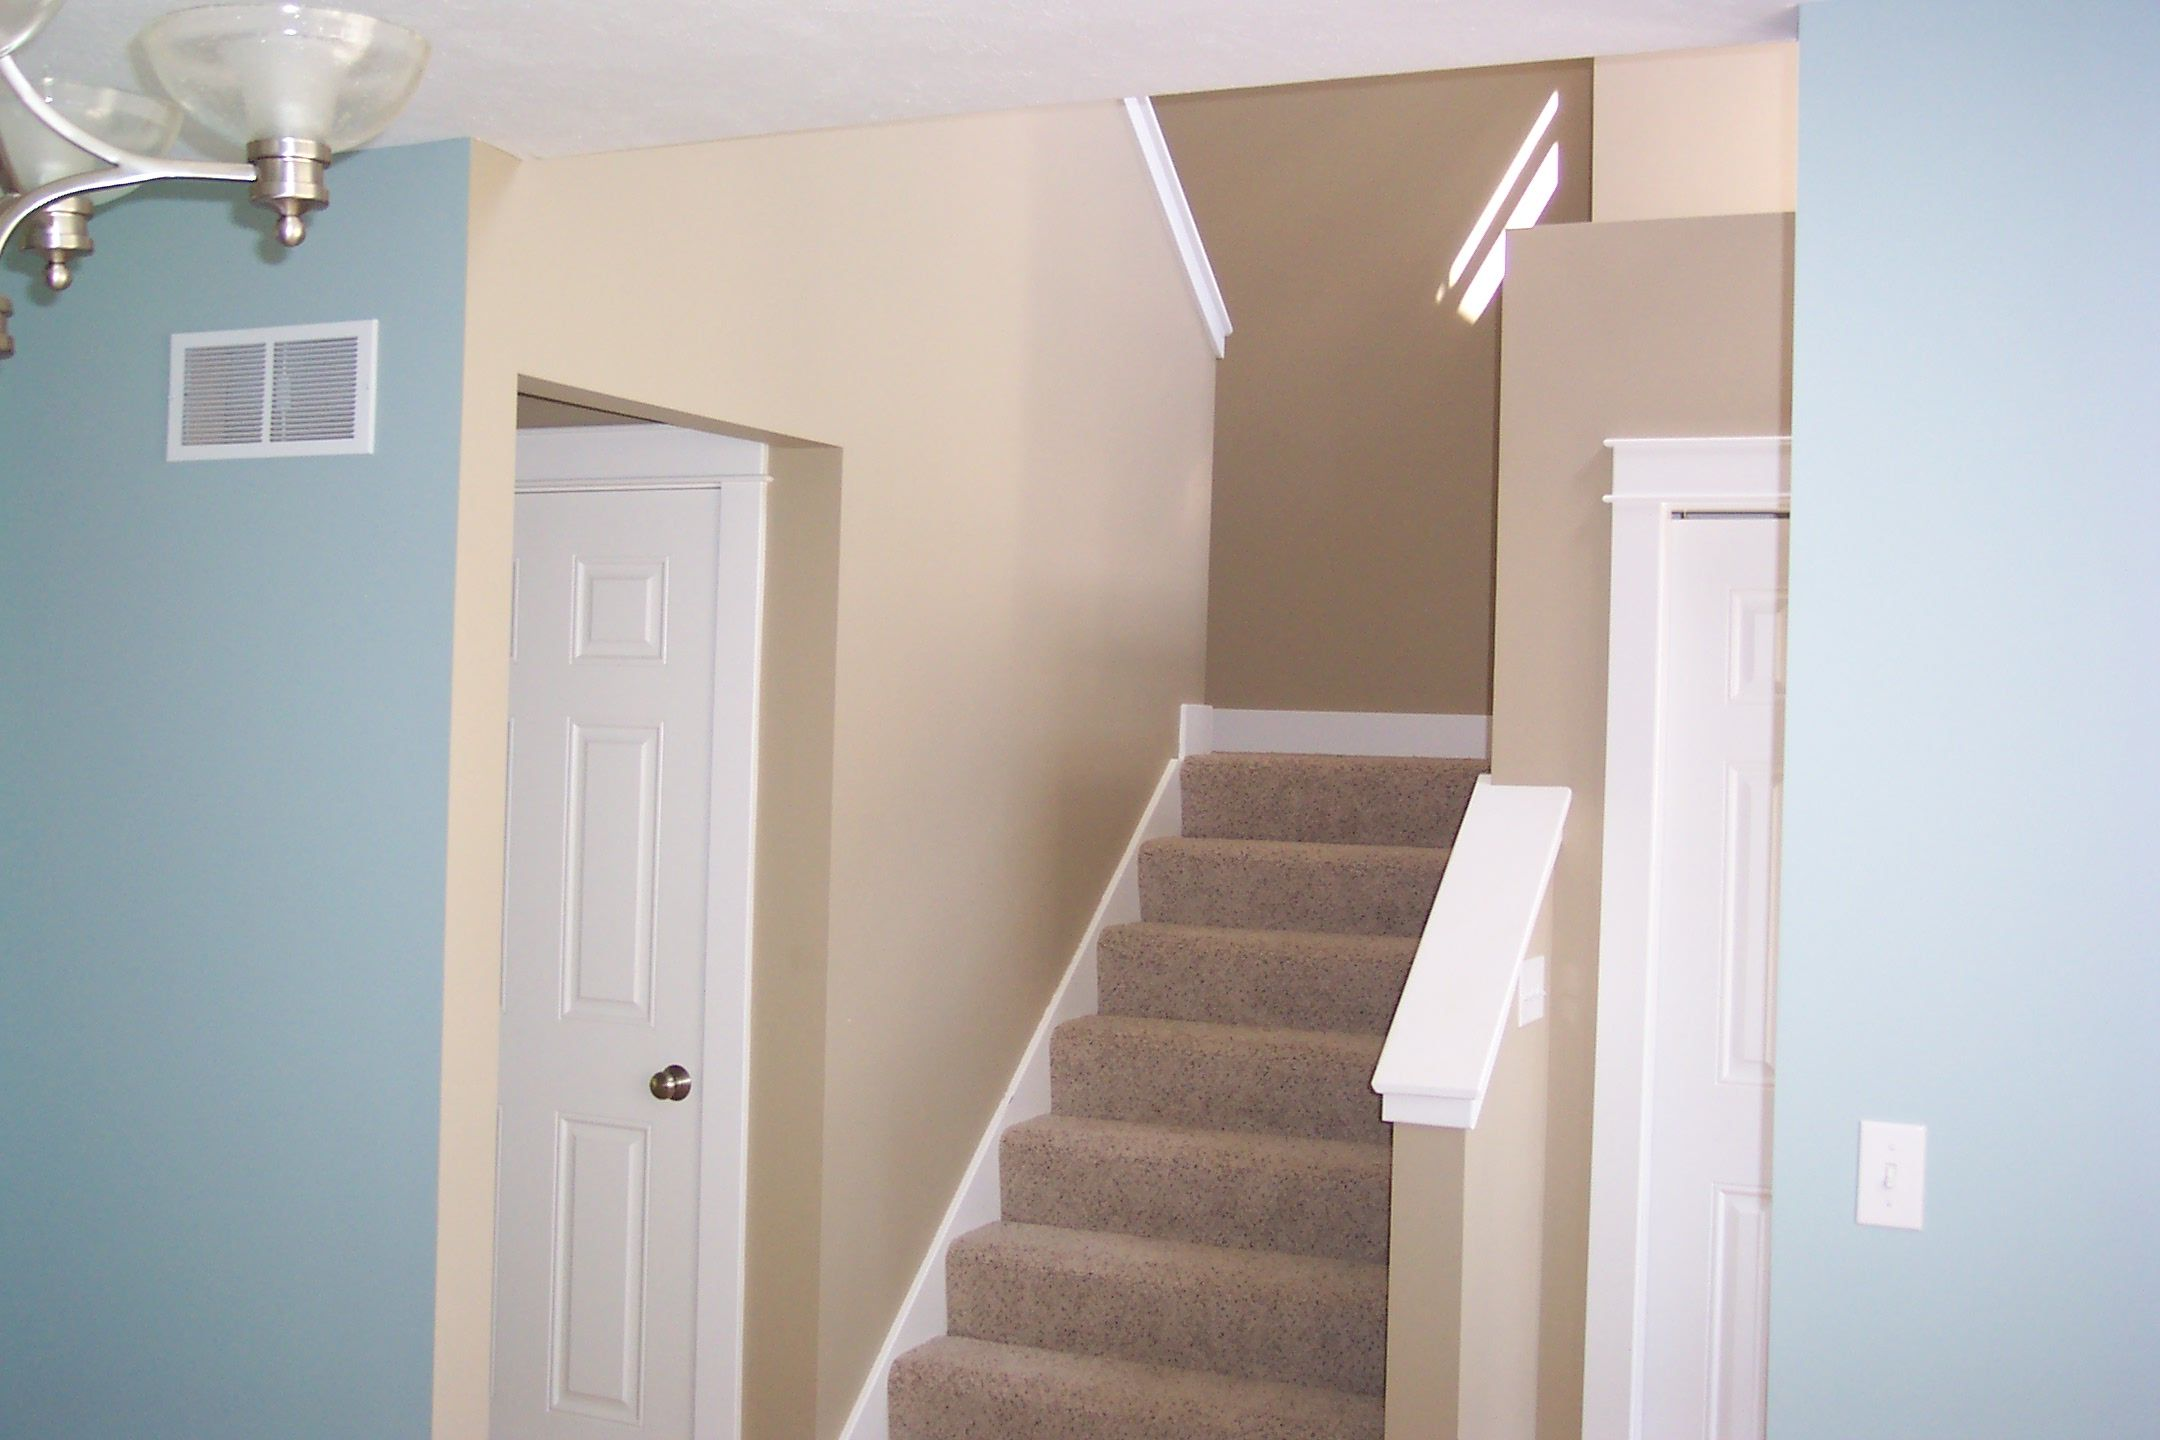 Coat Closet Under U Shaped Stairs - Story Country Porch